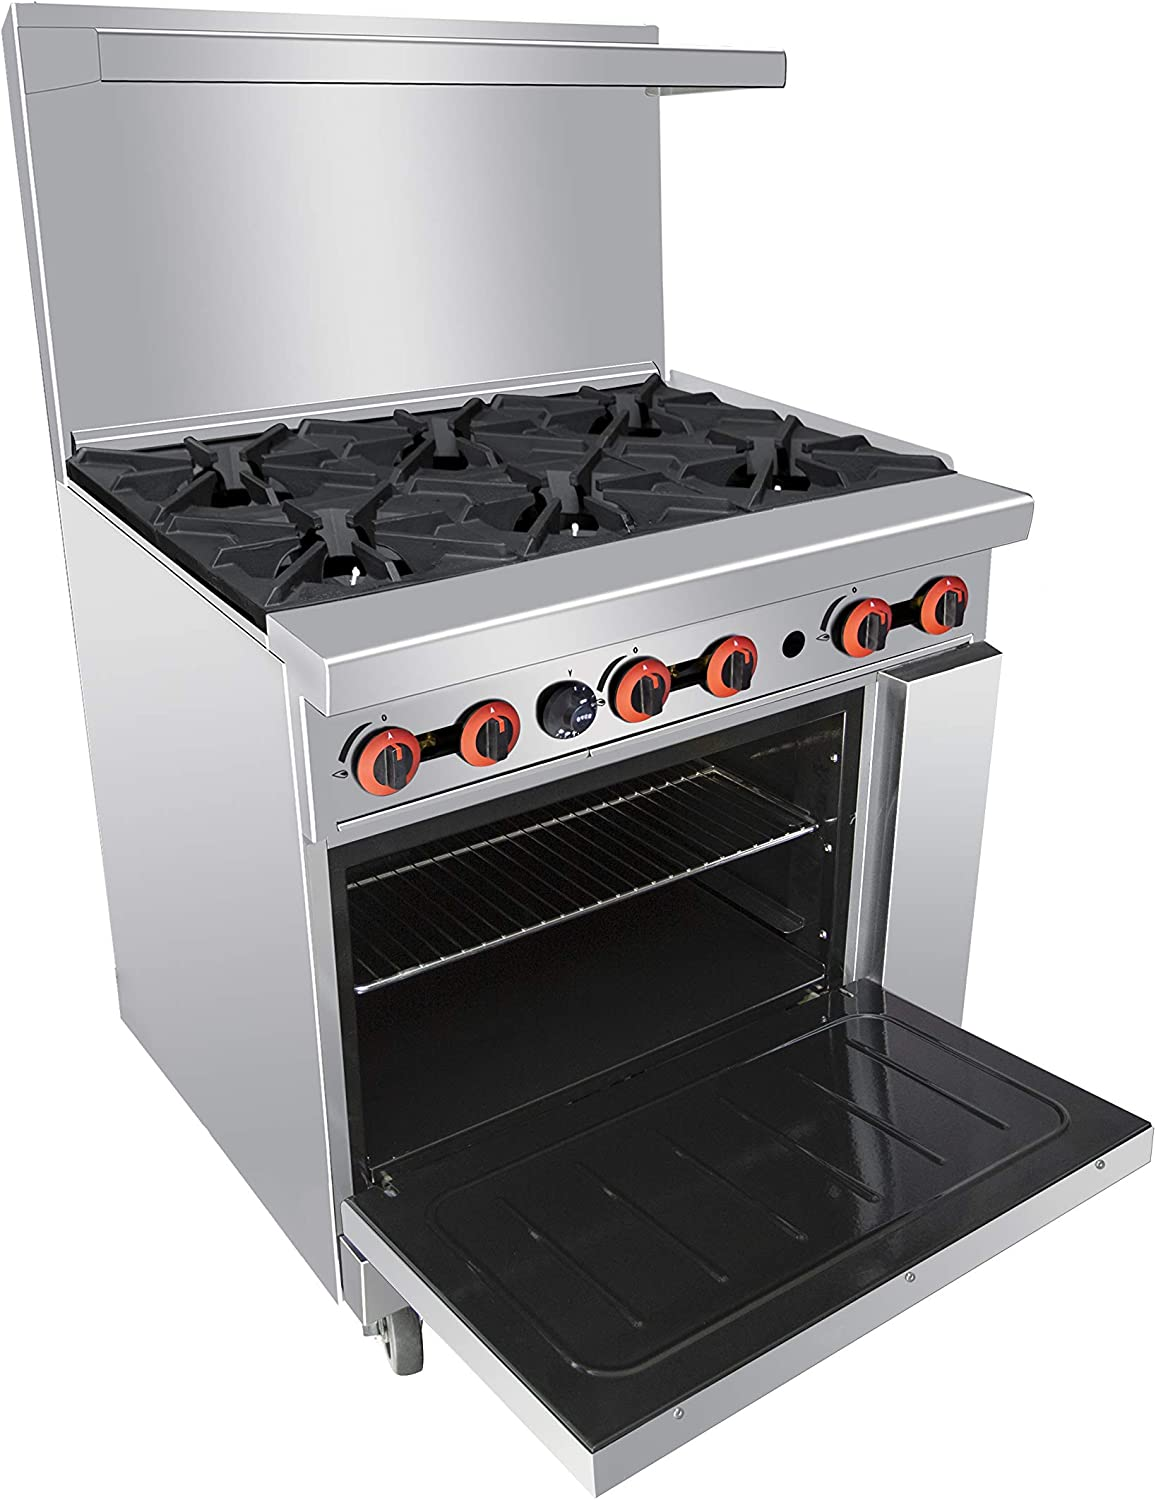 Commercial Liquefied Propane Range 6 Burners with 2 Ovens-KITMA 36 Inches Heavy Duty Gas Range Cooking Performance Group for Restaurant